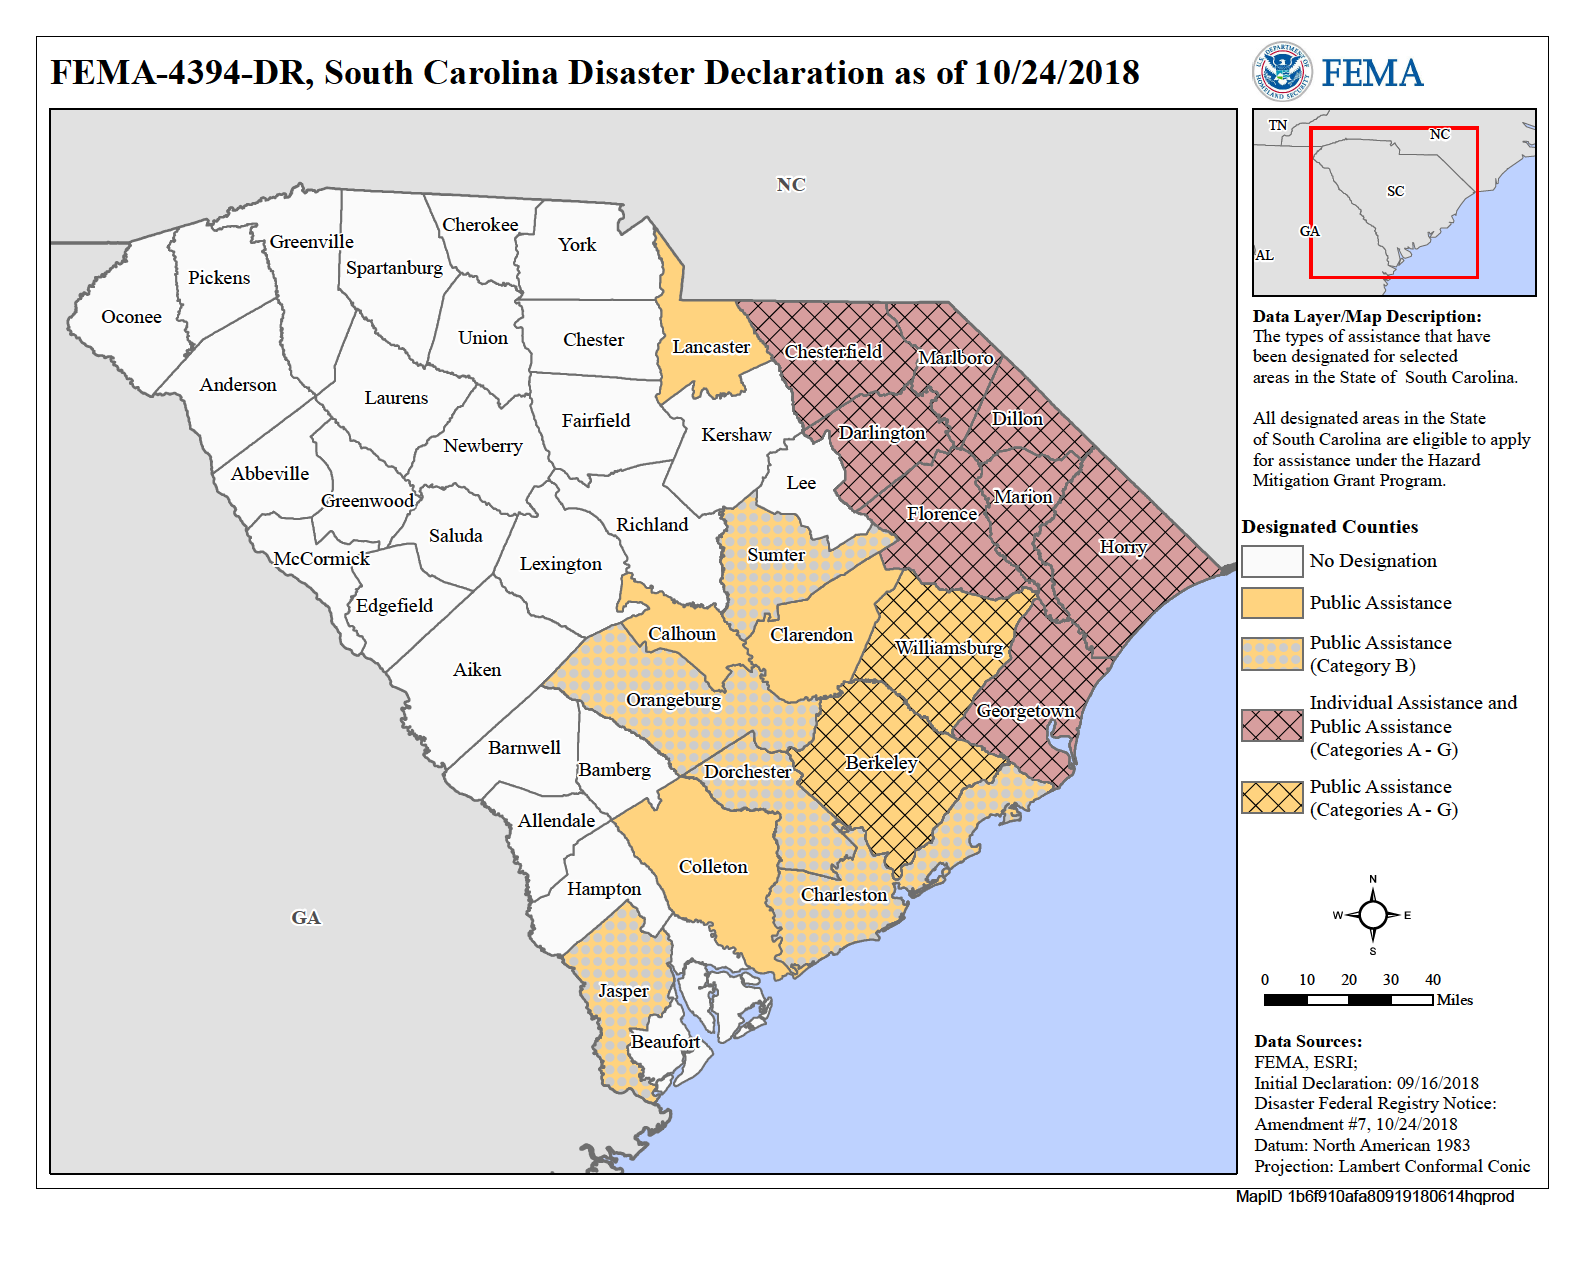 Incident Period: September 8 - October 8, 2018 - South Carolina Counties declared disasters due to Hurricane FlorenceChesterfield, Darlington, Dillon, Florence, Georgetown, Horry, Marion, and Marlboro(Disaster Relief is helping in all Counties)